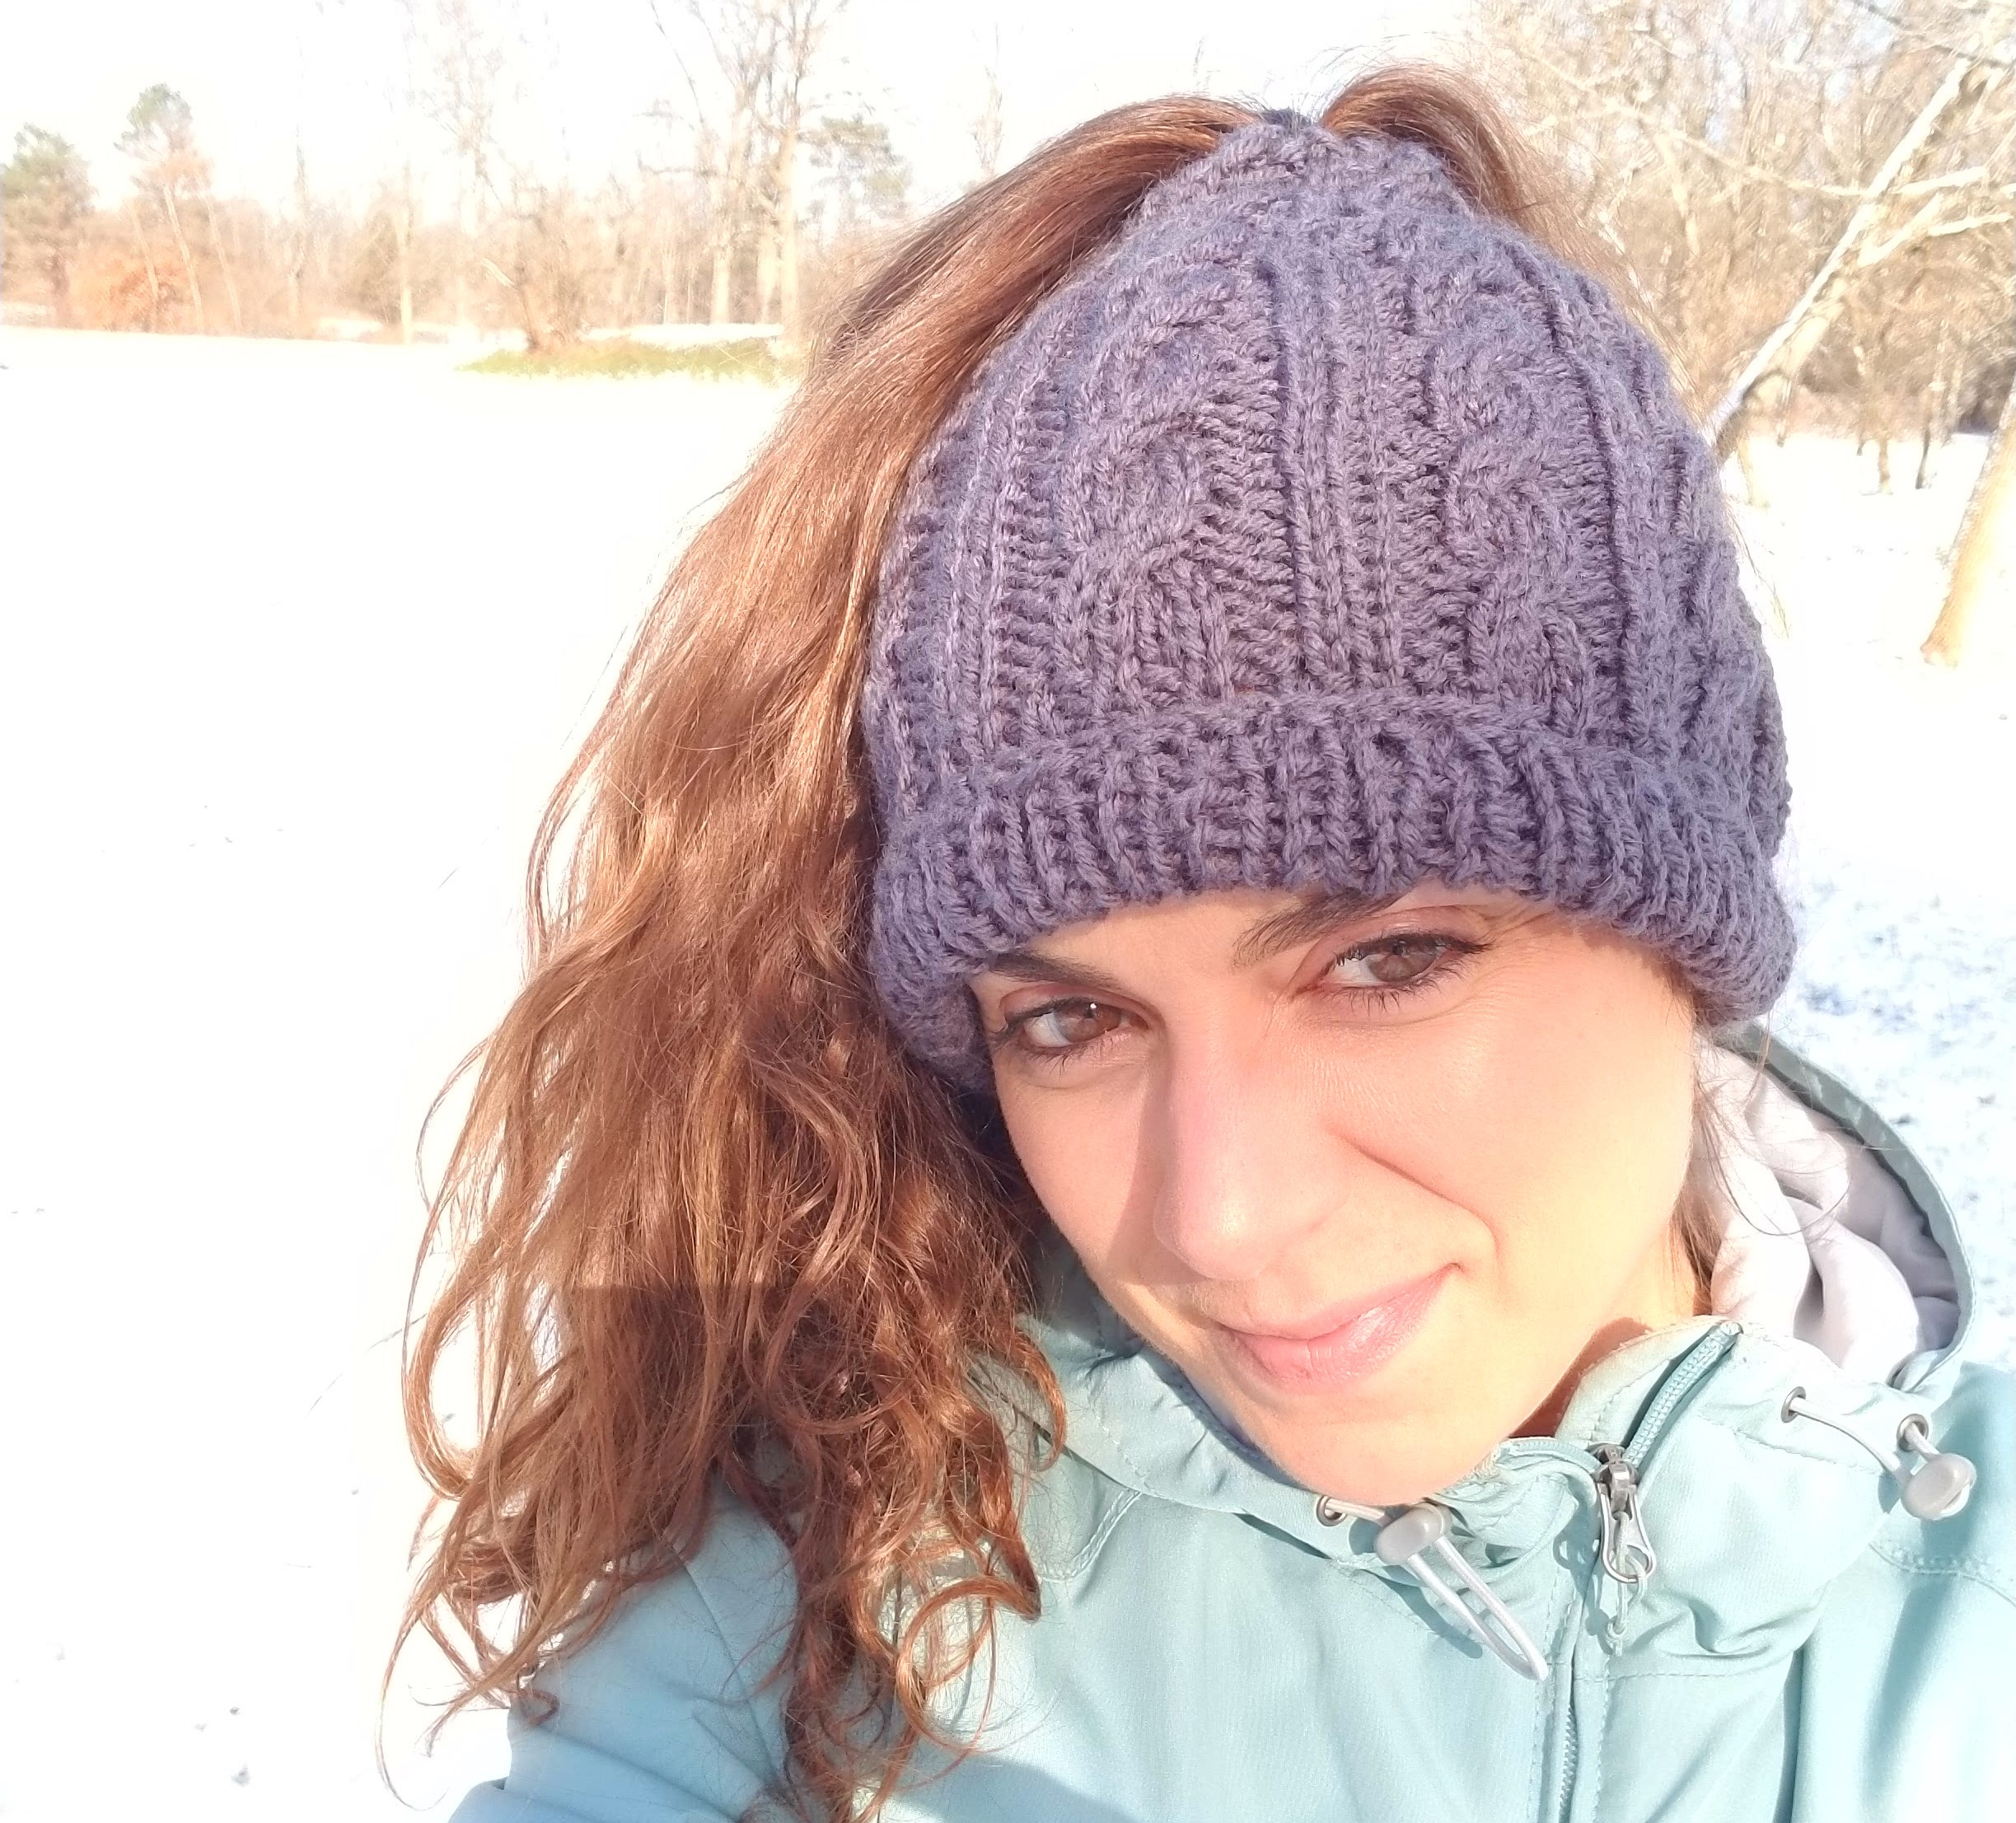 Bundle up baby! Exercising outside is better - even in winter! Just dress right…and get a super-cute pony-hat from a talented local artisan!